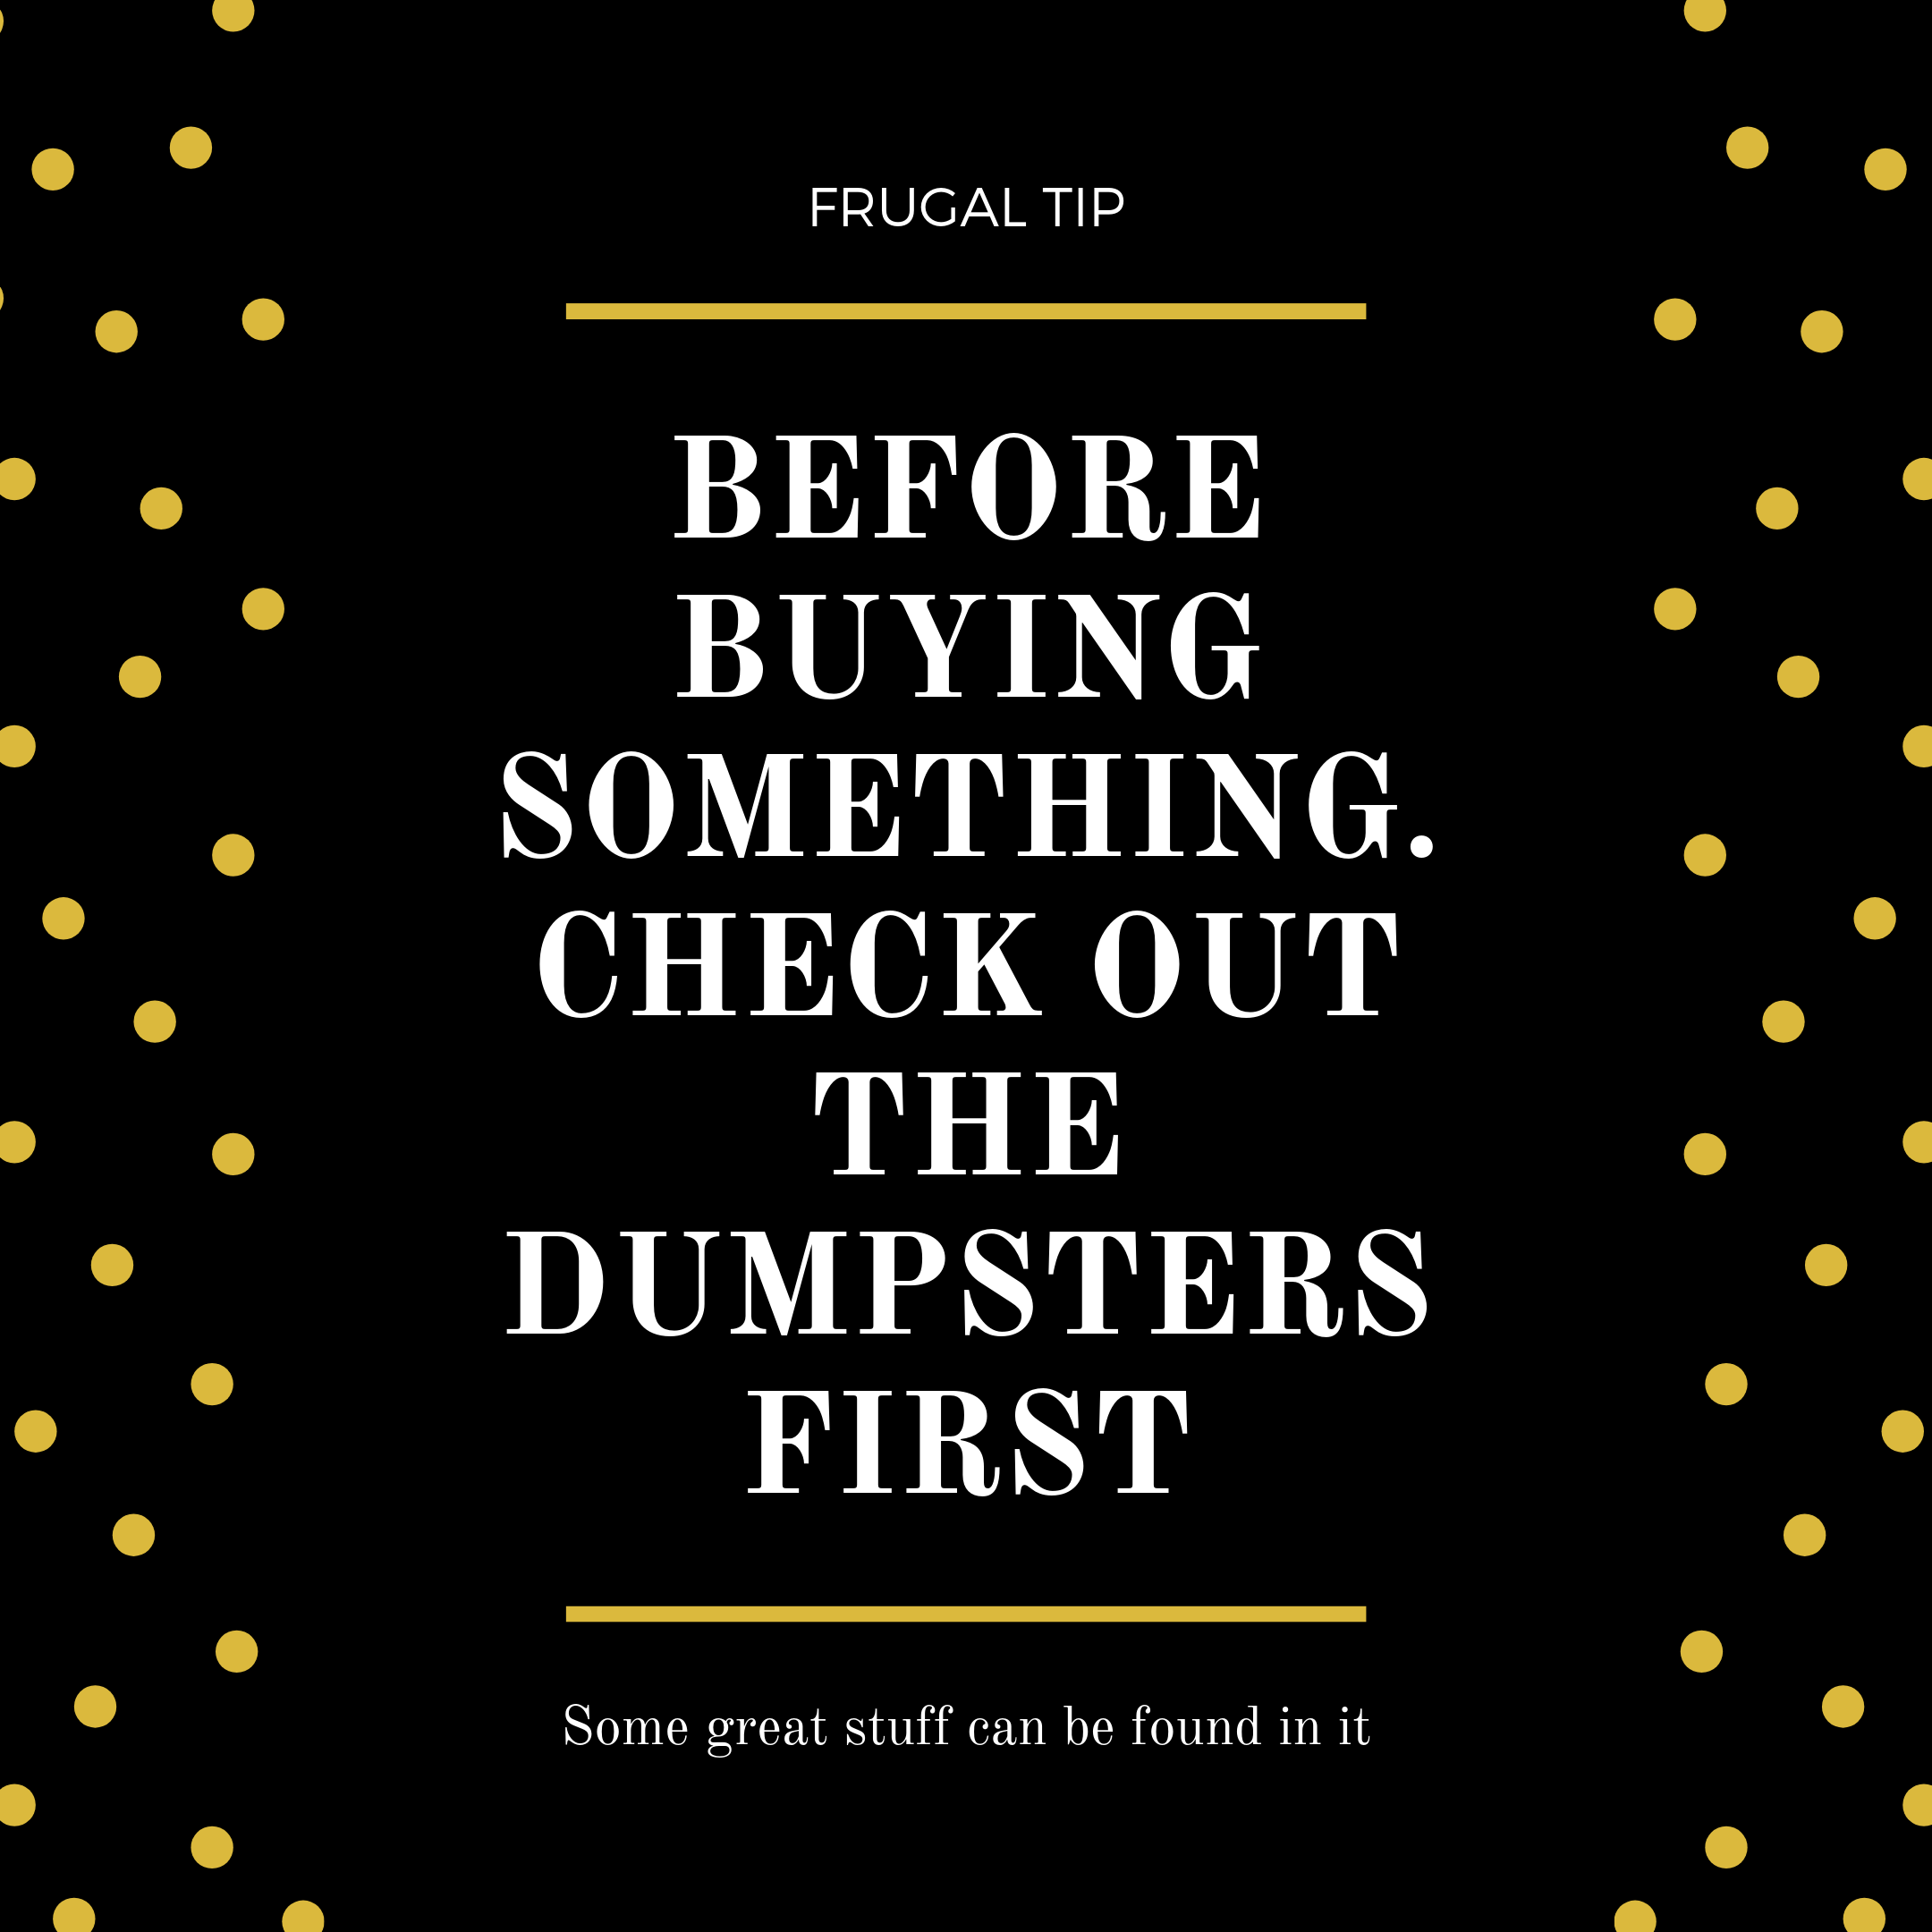 Need new furniture? Check out the dumpster first